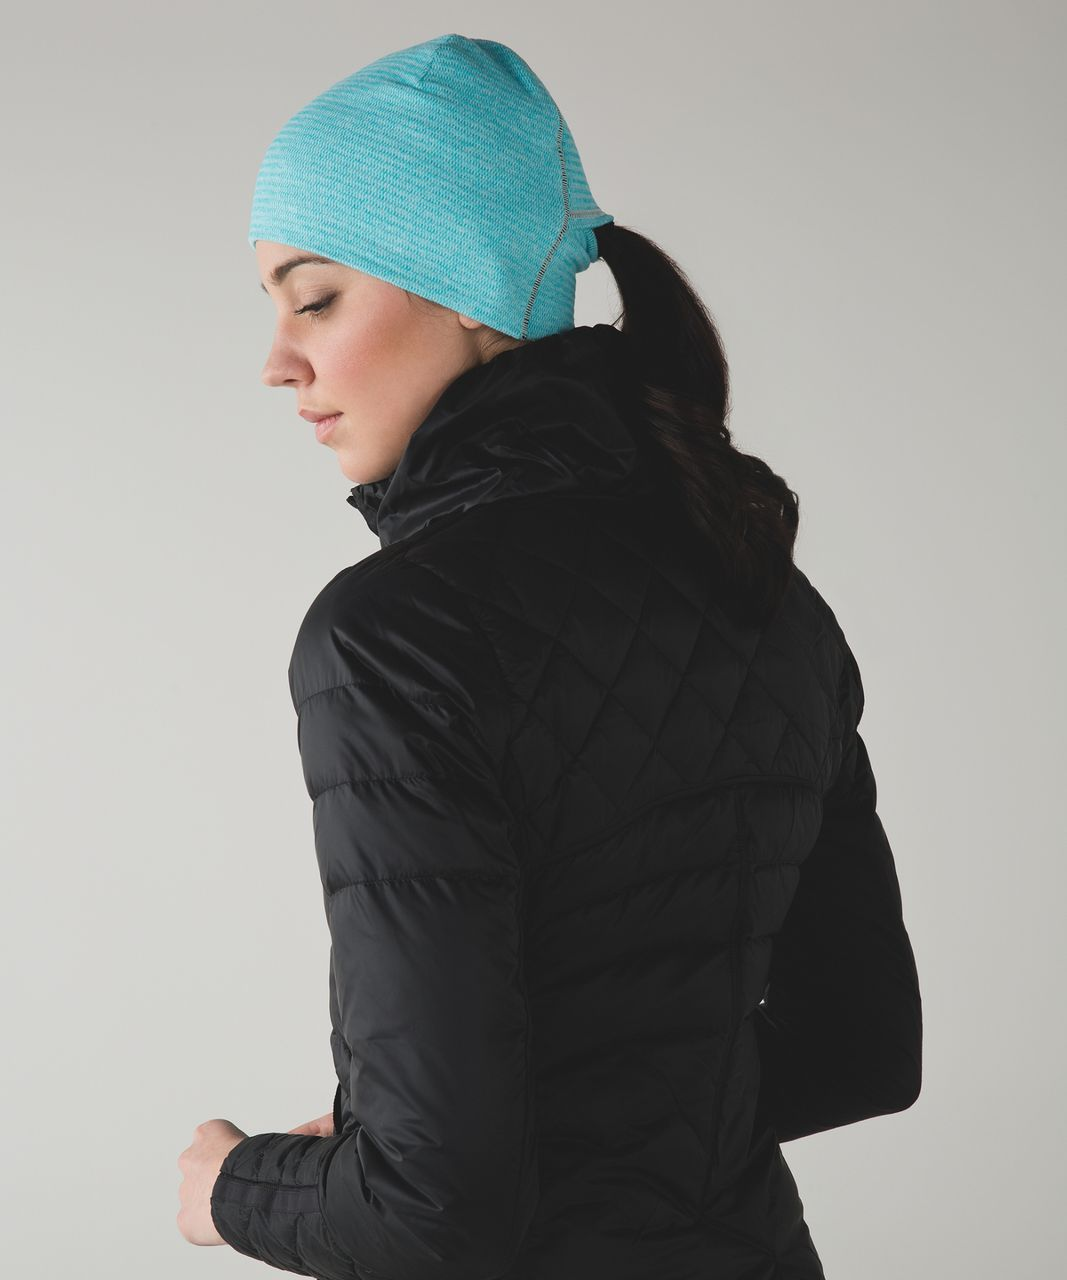 Lululemon Run And Done Toque - Mini Check Pique Aquamarine Heathered Peacock Blue